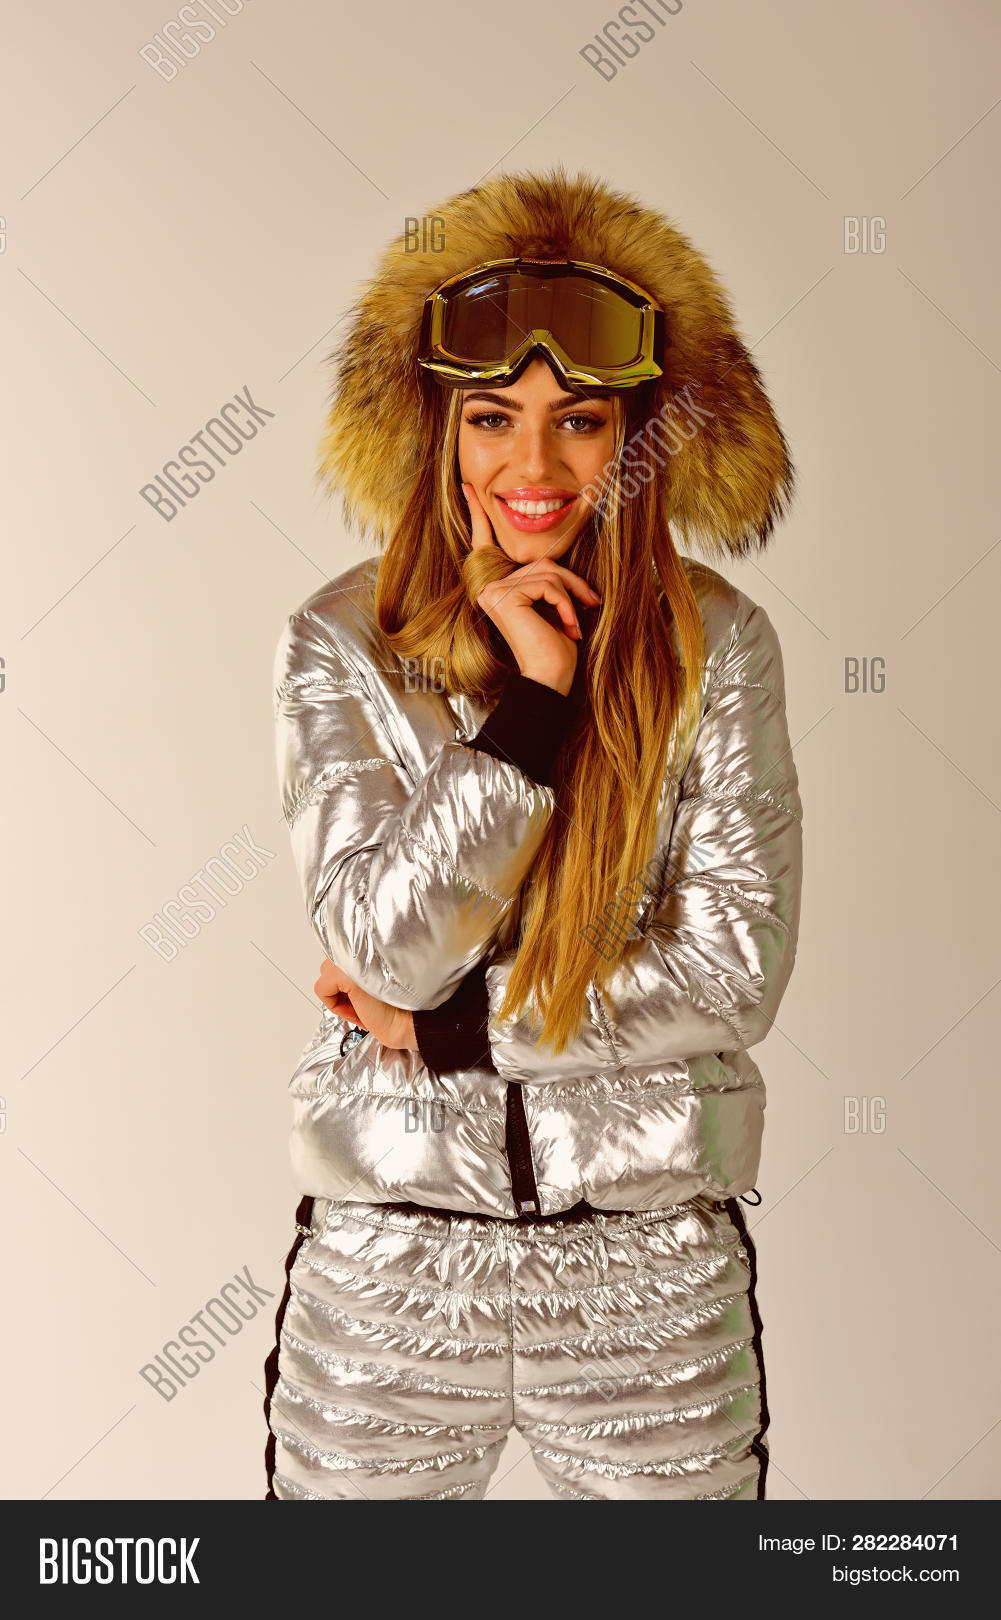 Model In Christmas Vacation.Christmas Vacation Image Photo Free Trial Bigstock